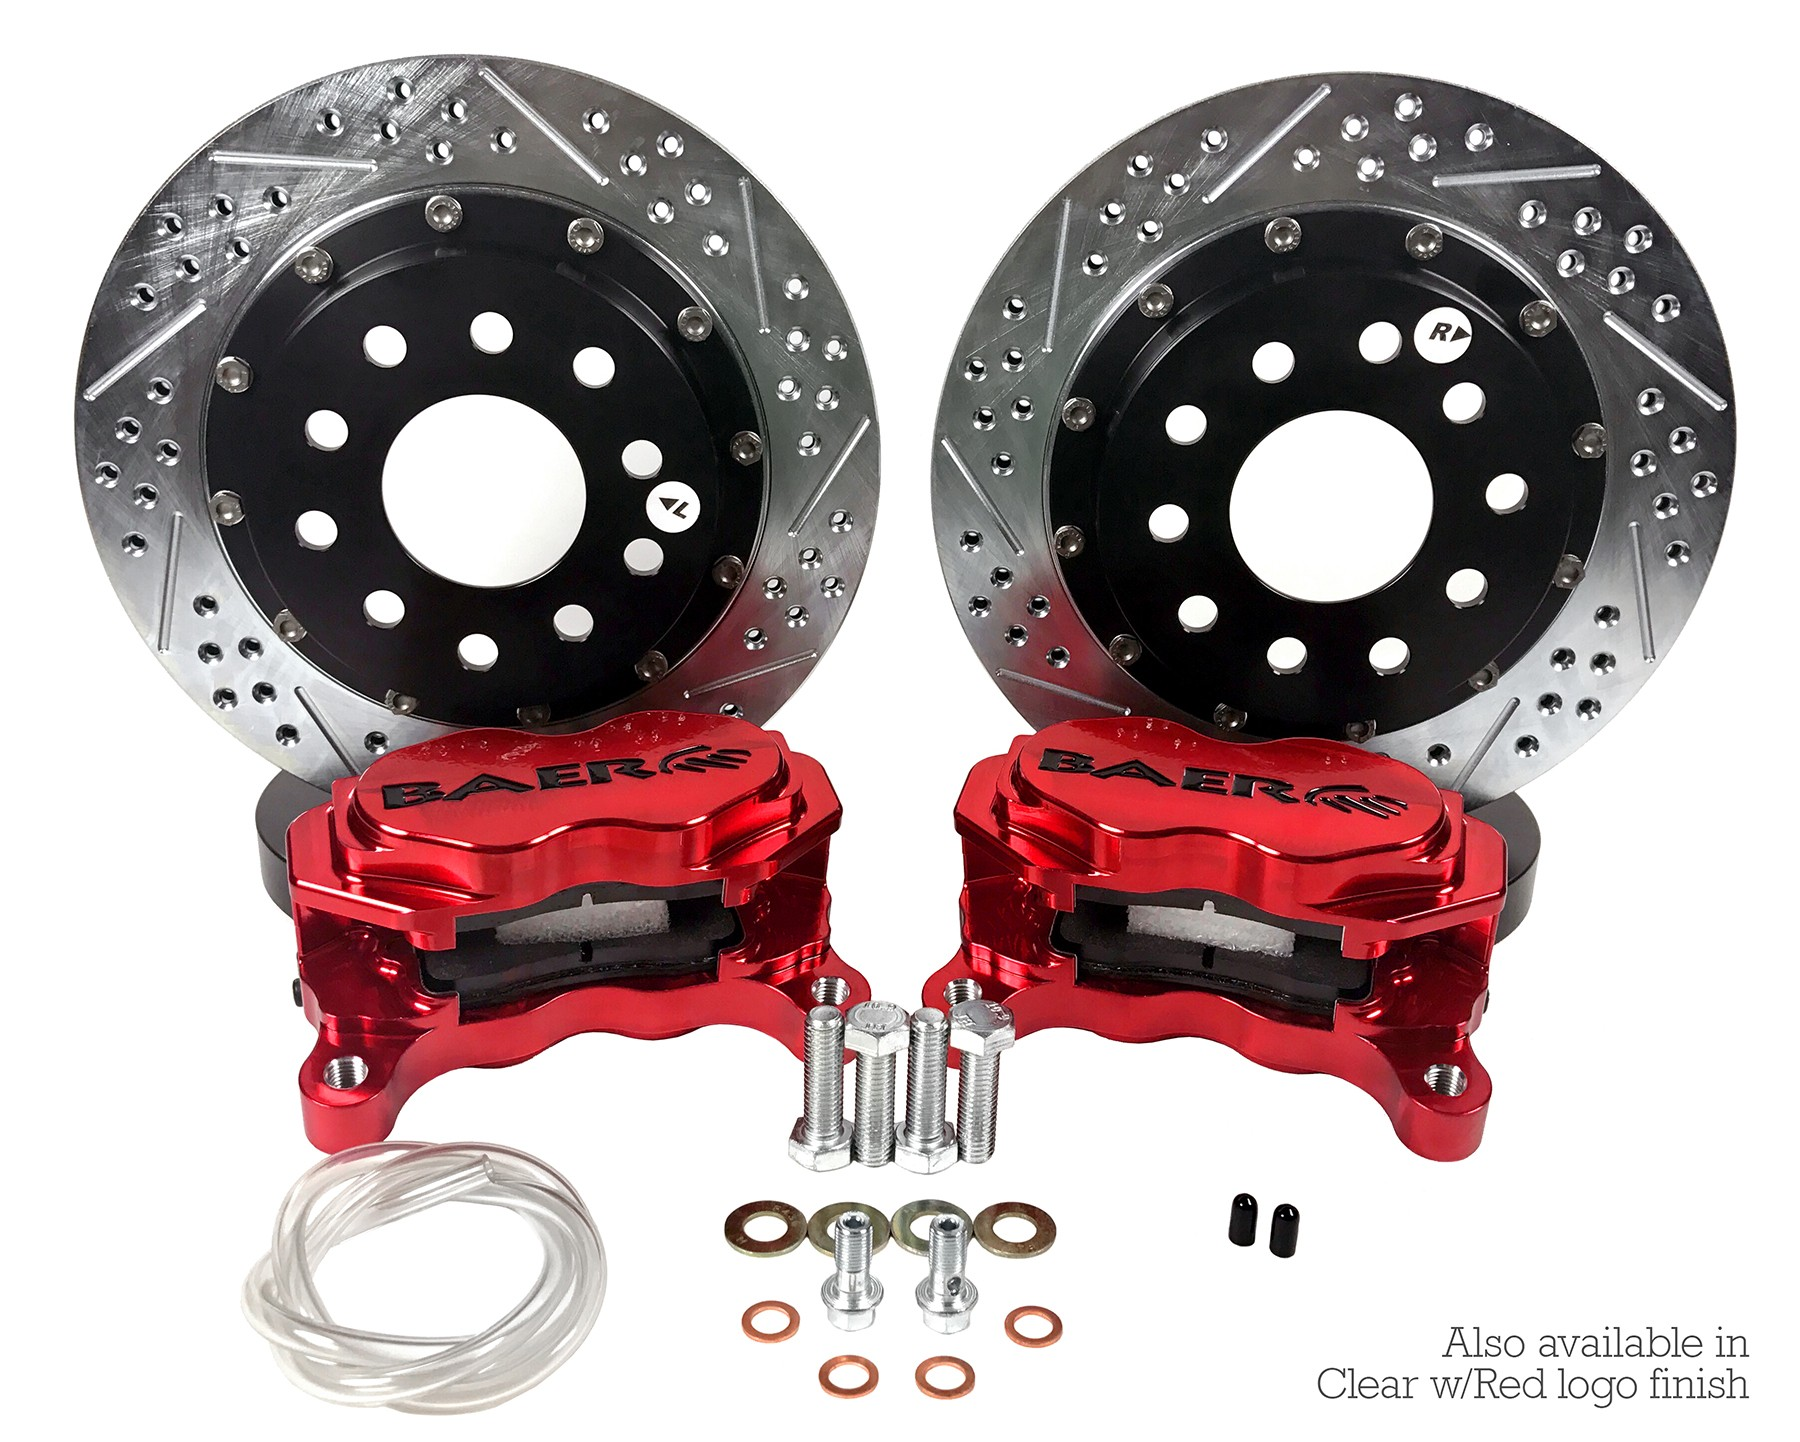 "11"" Front SS4+ Deep Stage Drag Race Brake System"